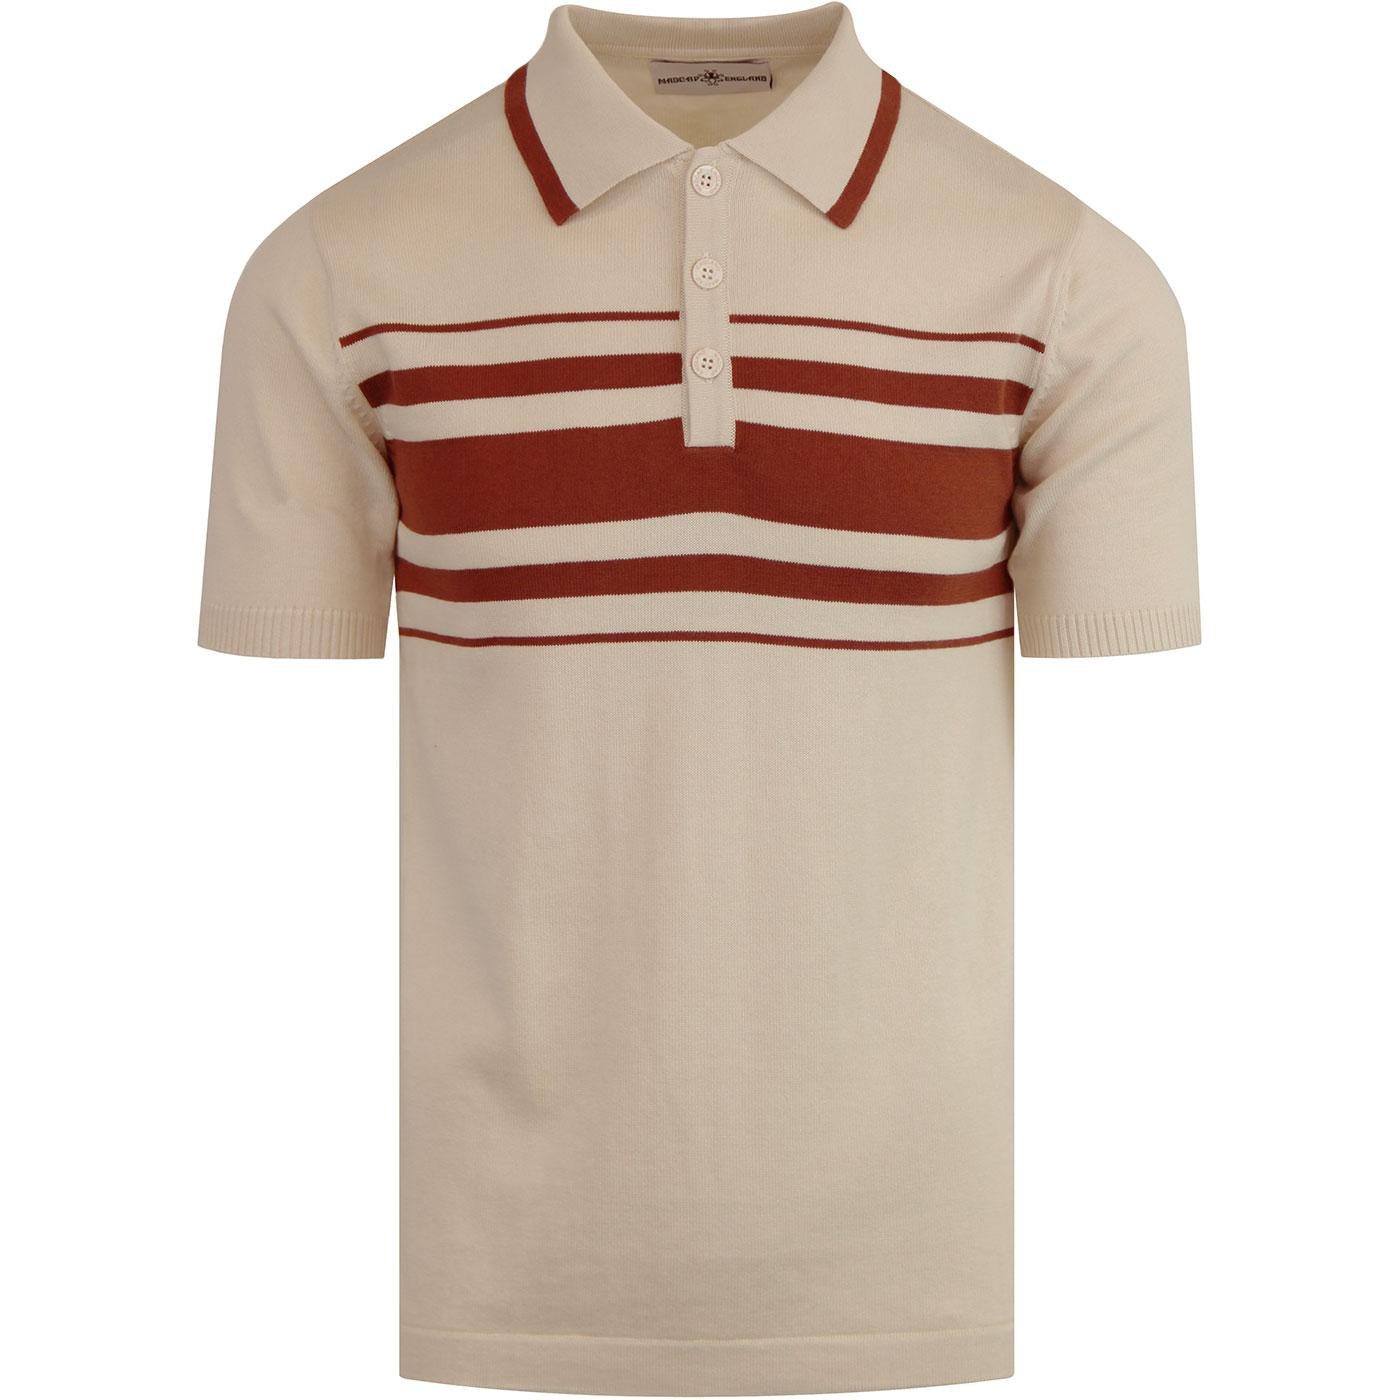 cbce27c89ea MADCAP ENGLAND Aftershock 60s Mod Stripe Knit Polo Birch